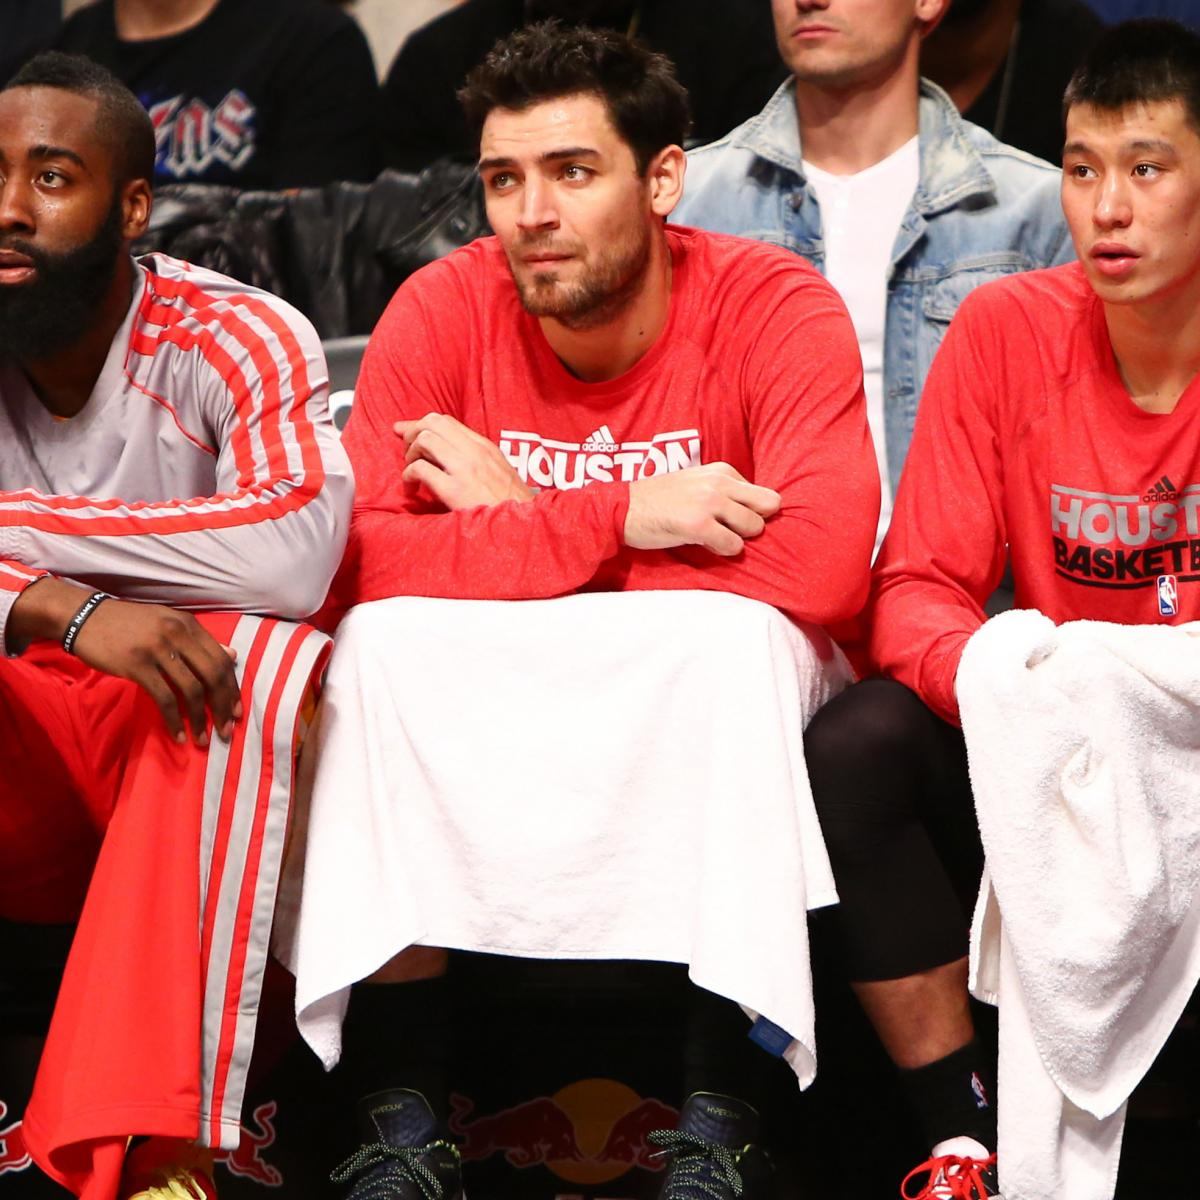 Rockets Vs Warriors Tickets Game 3: Houston Rockets Vs. Golden State Warriors: Preview